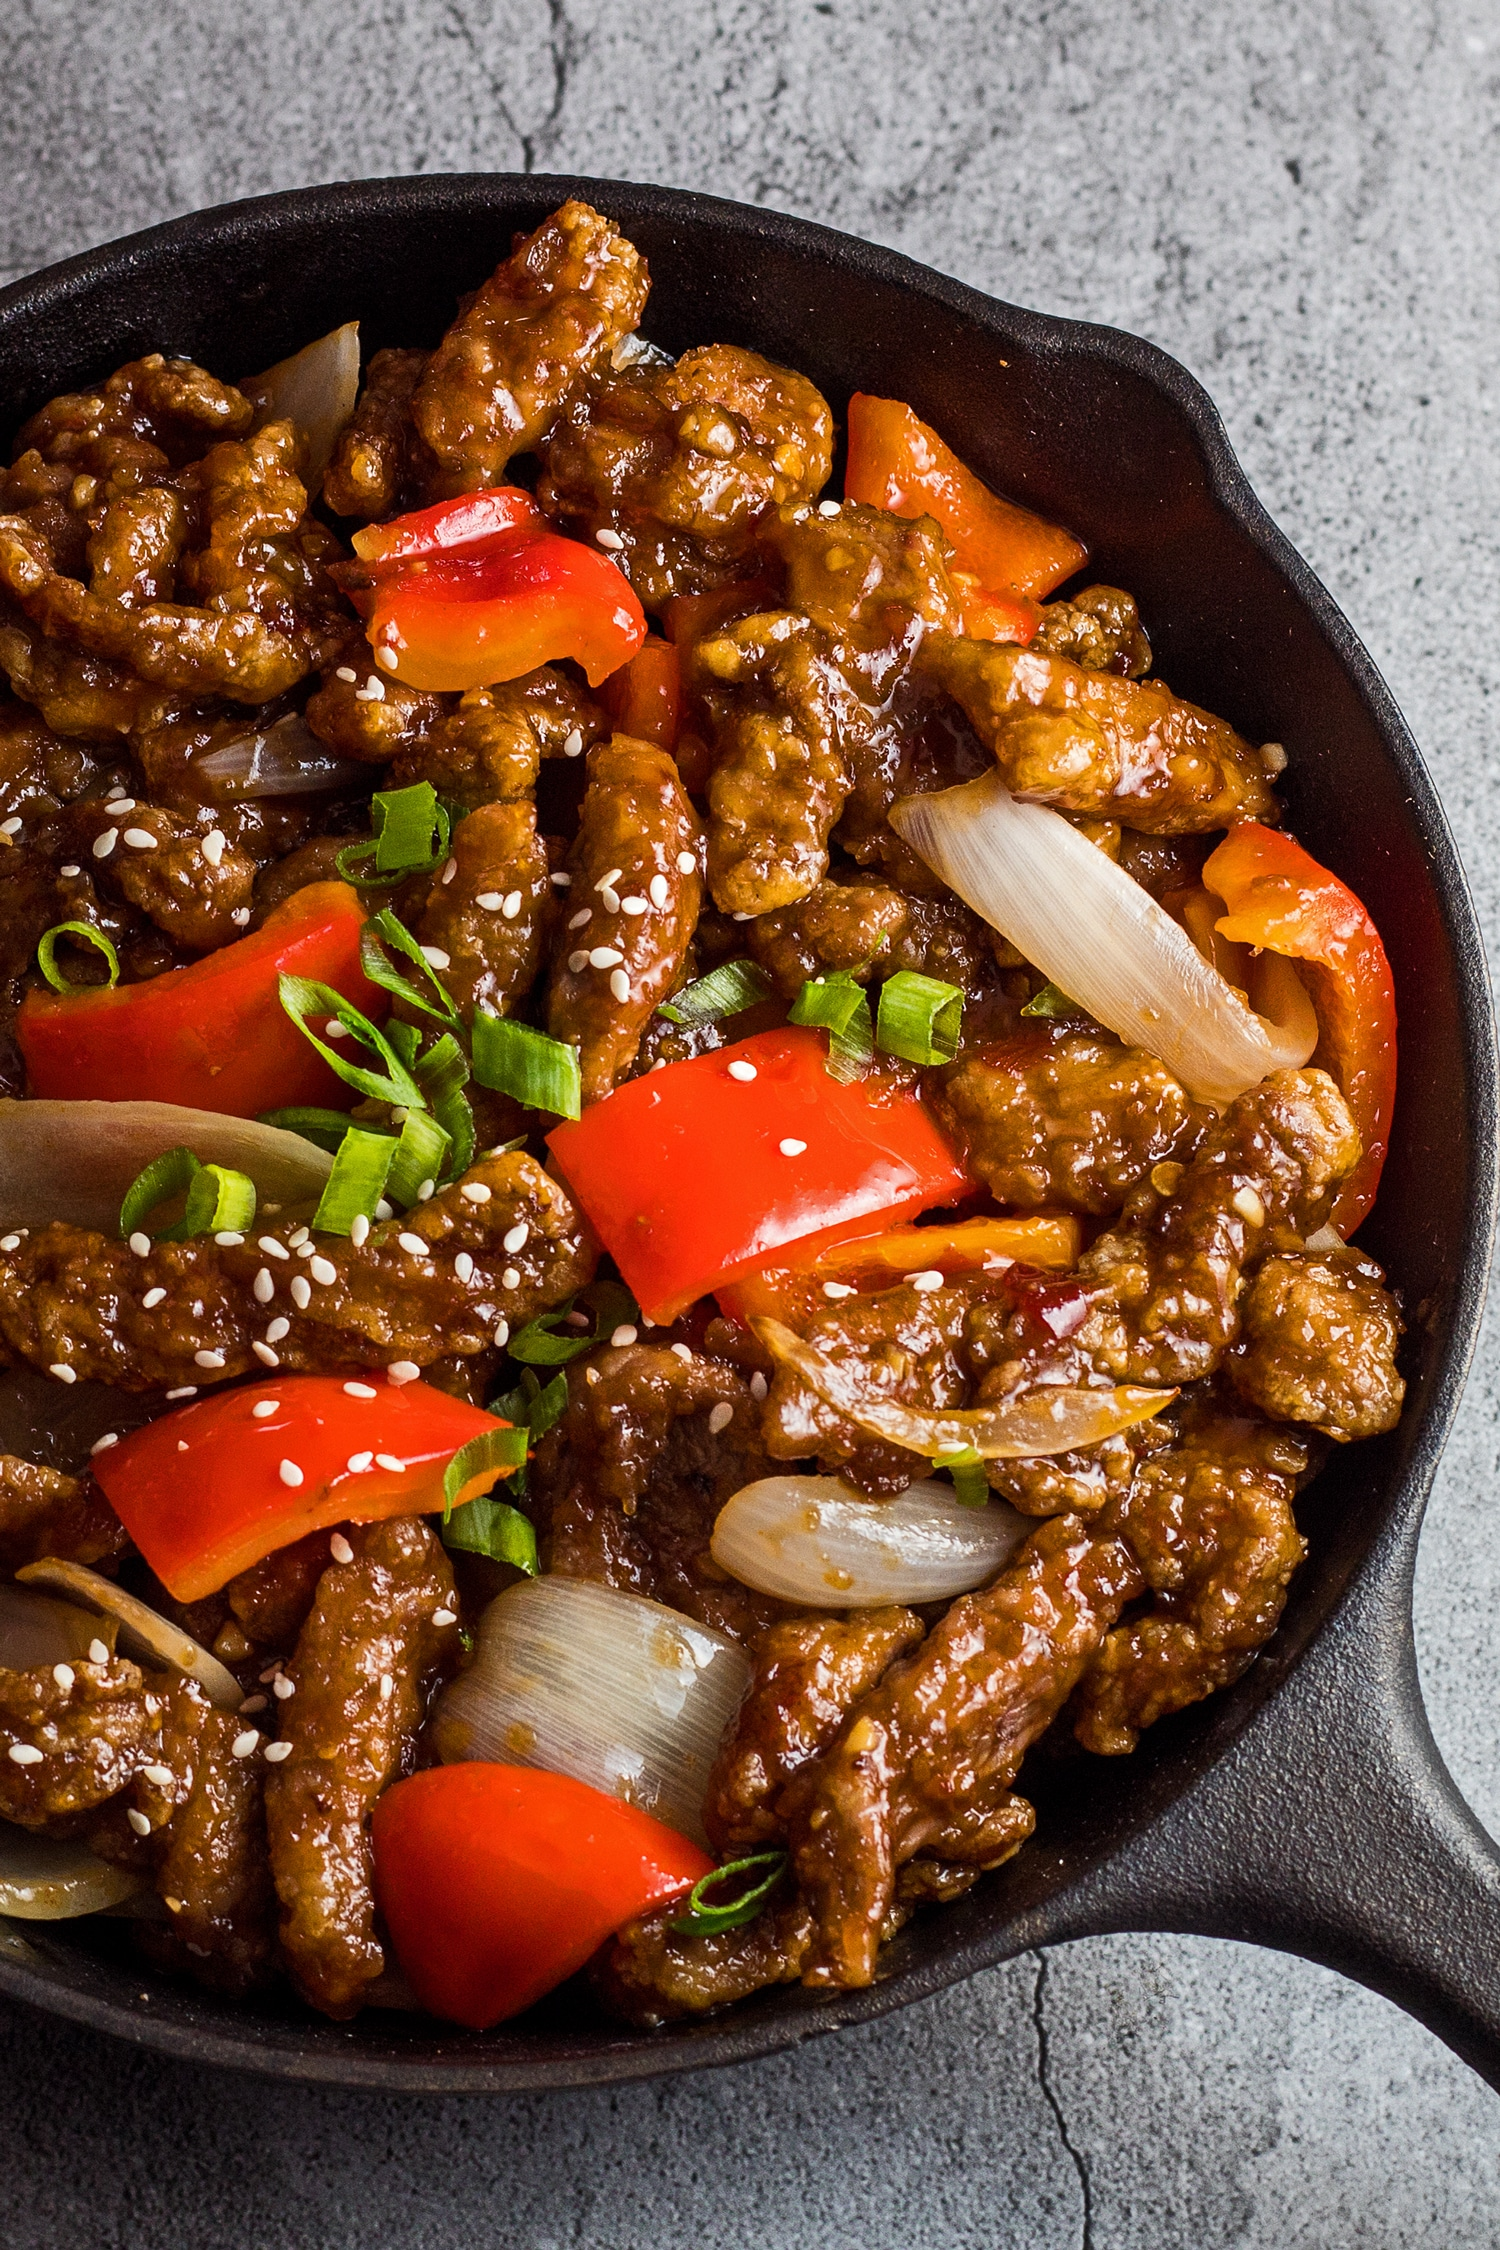 Tall overhead photo of the beijing beef in the pan garnished with green onion and sesame seeds.